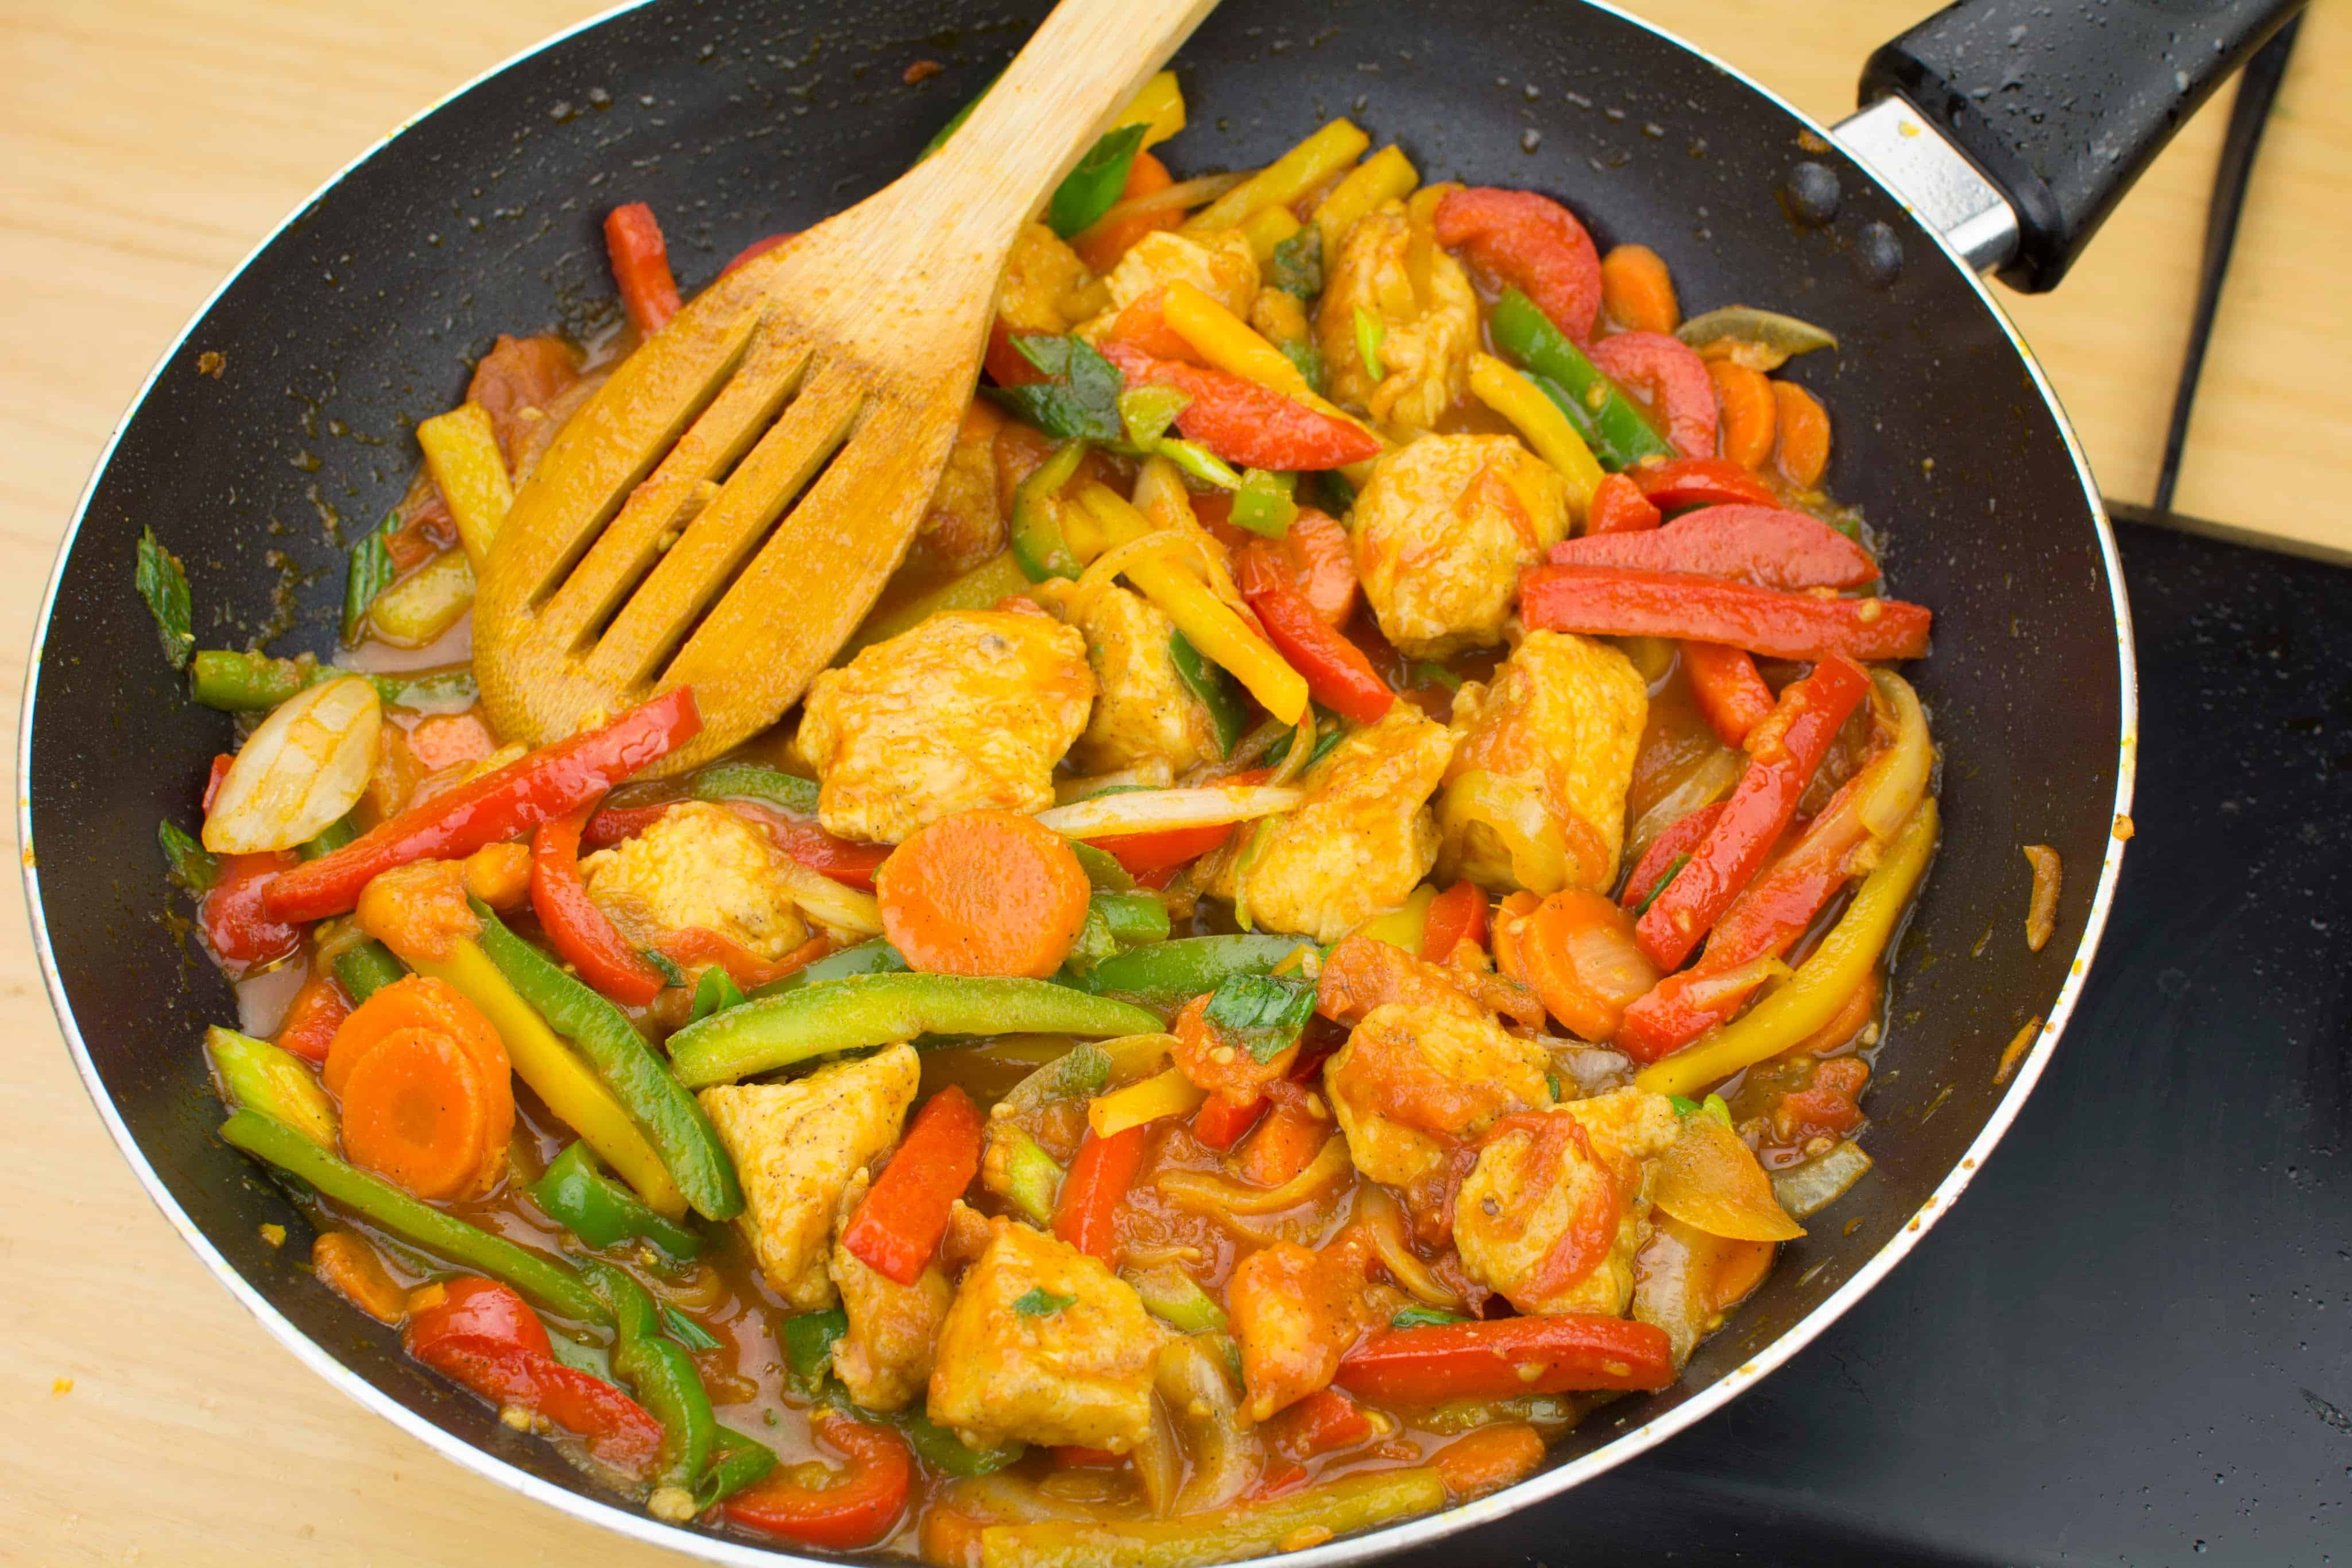 Chicken And Vegetable Stir Fry Delicious And Easy